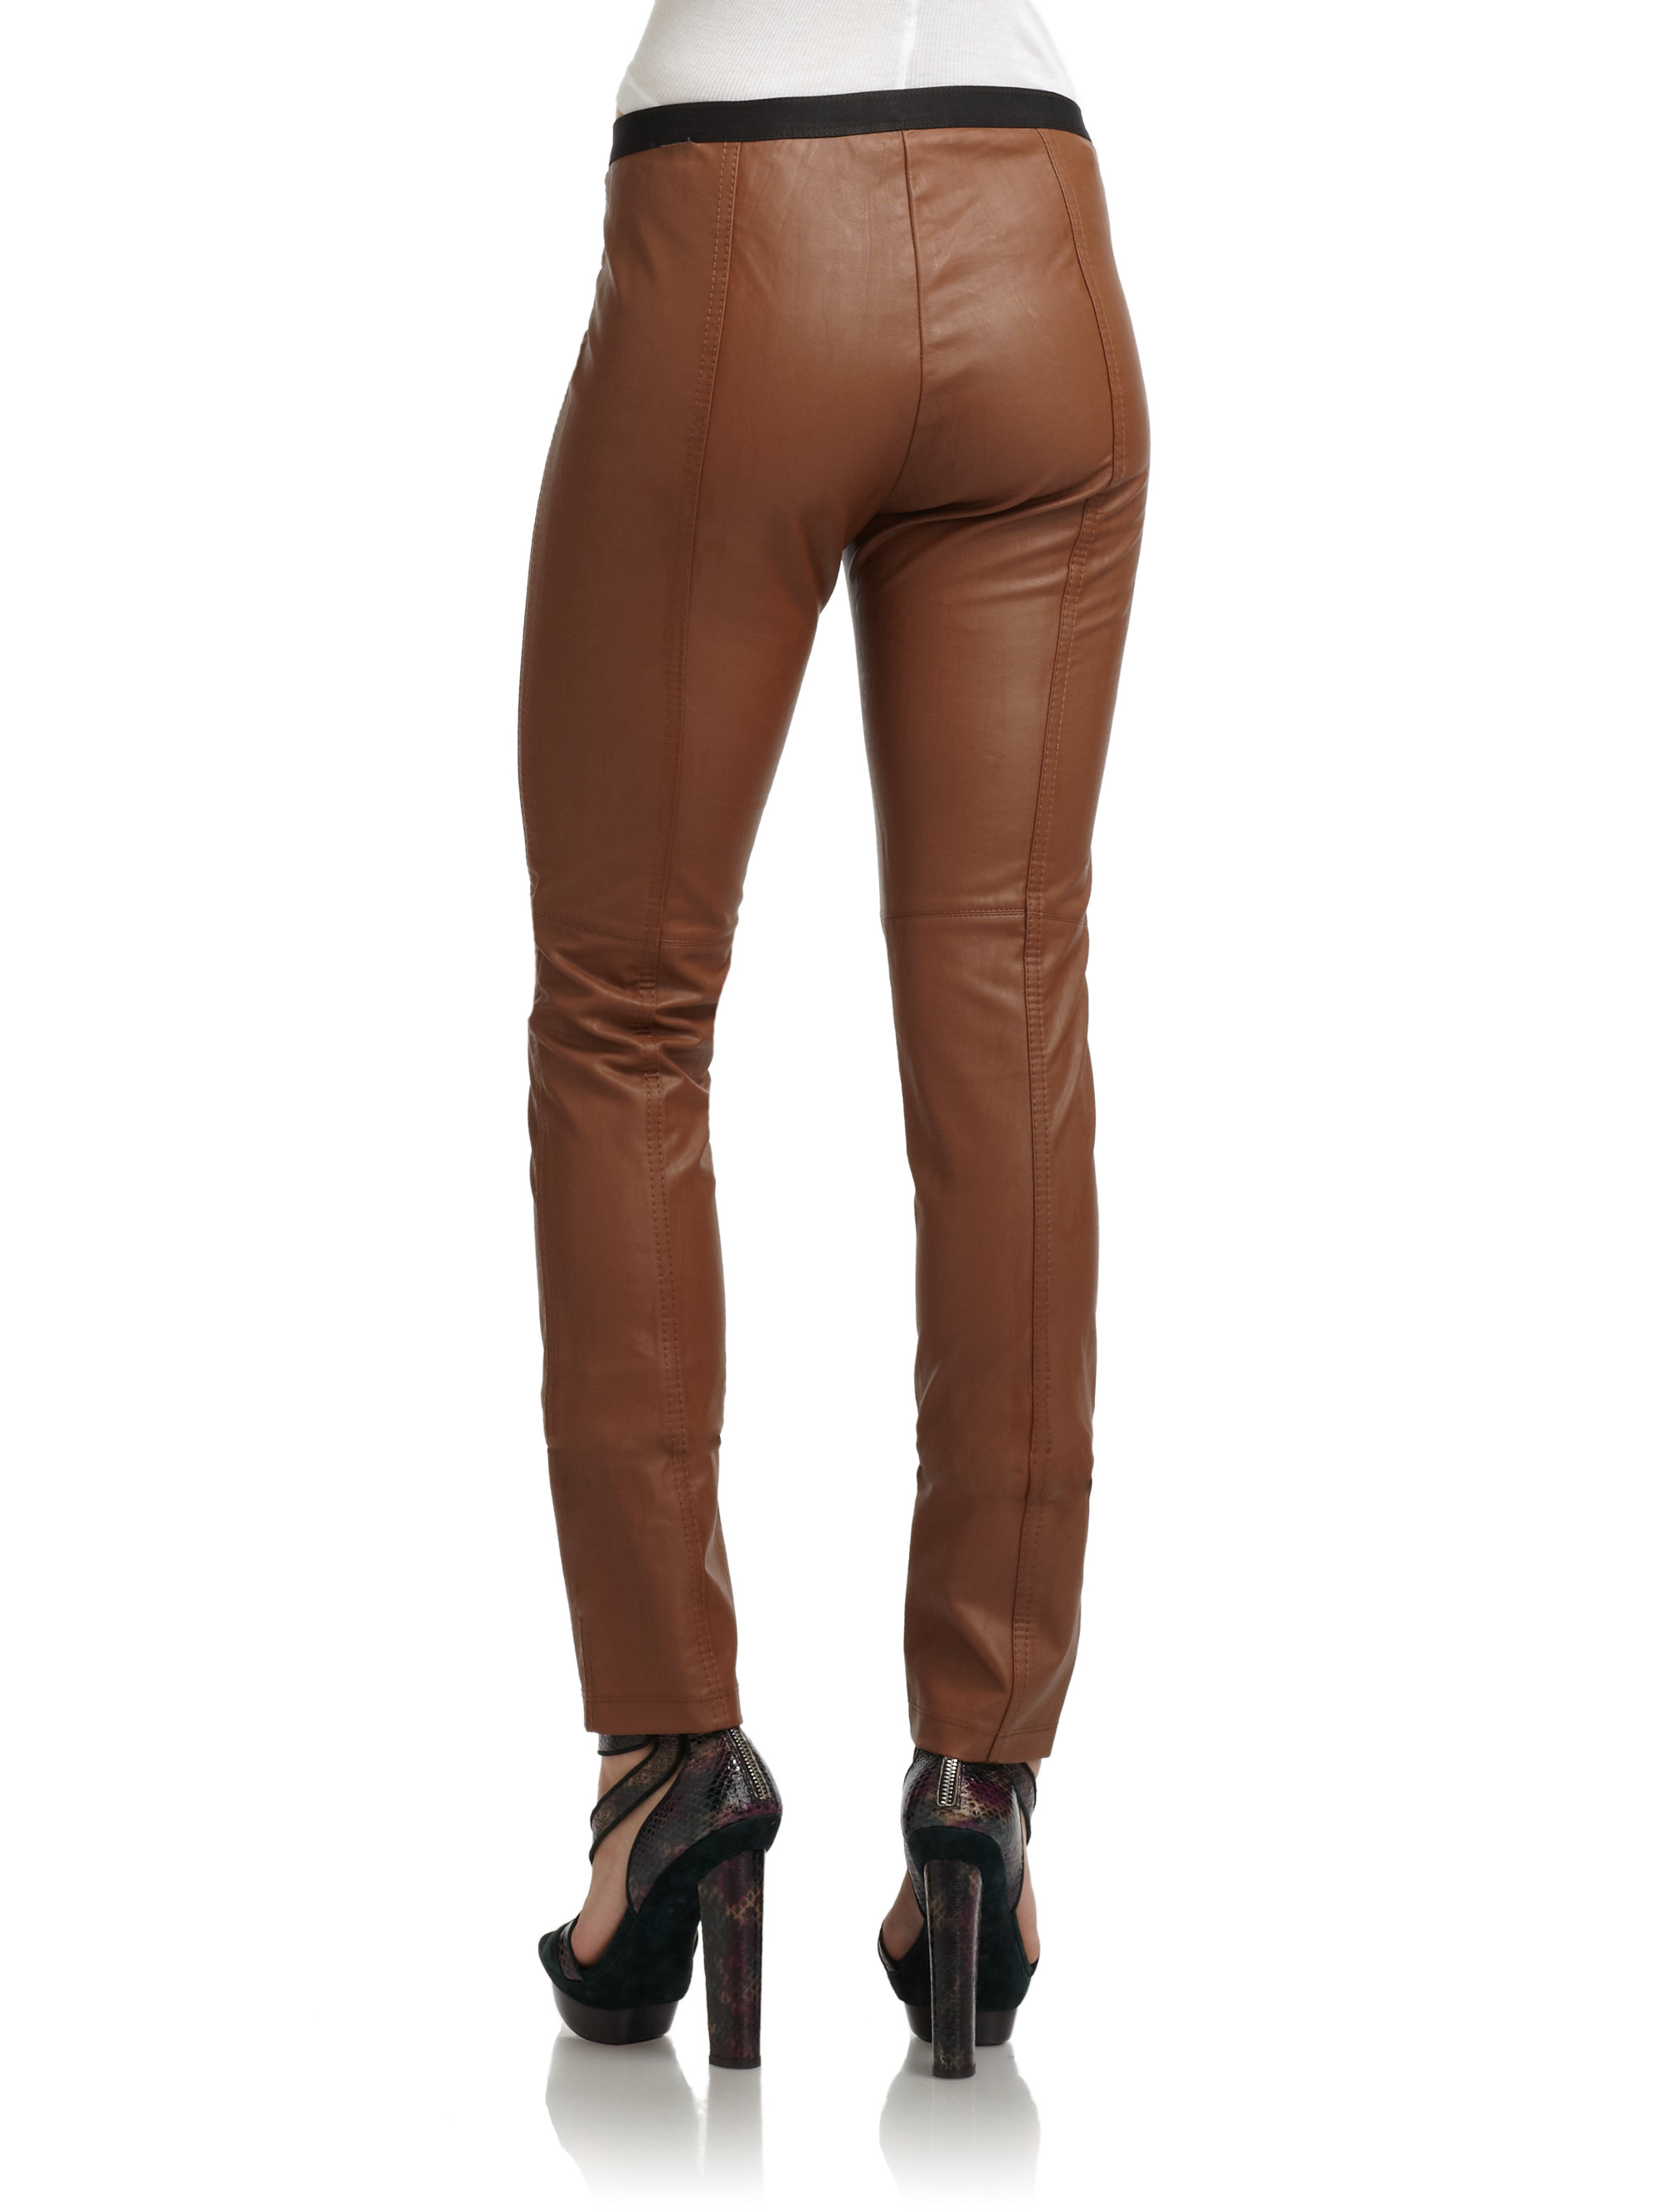 73f2560ffa542 BCBGMAXAZRIA Faux Leather Pants in Brown - Lyst